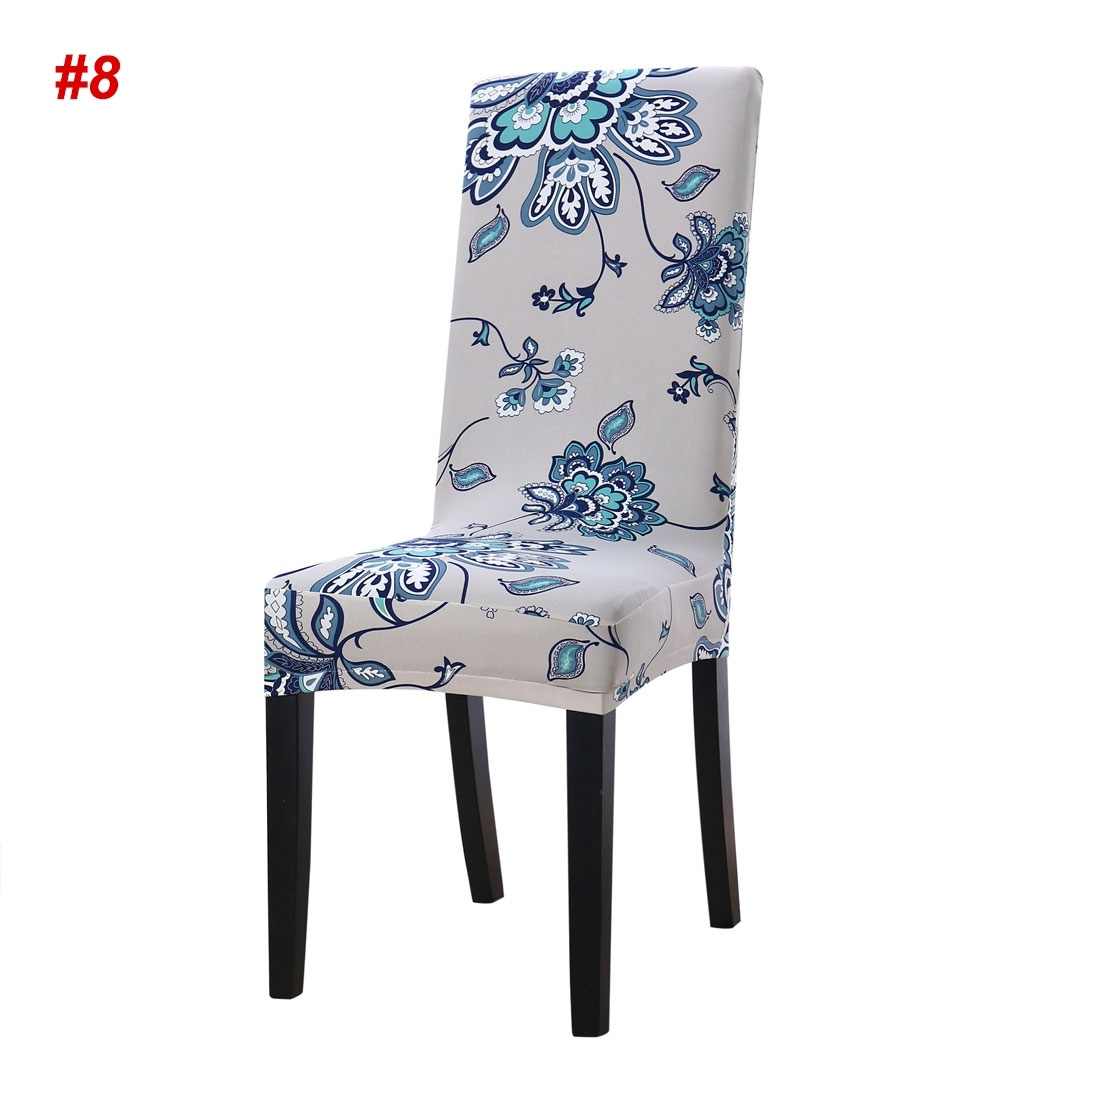 Quilted Lounge Chair Covers Buy Chair Covers Slipcovers Online At Overstock Our Best